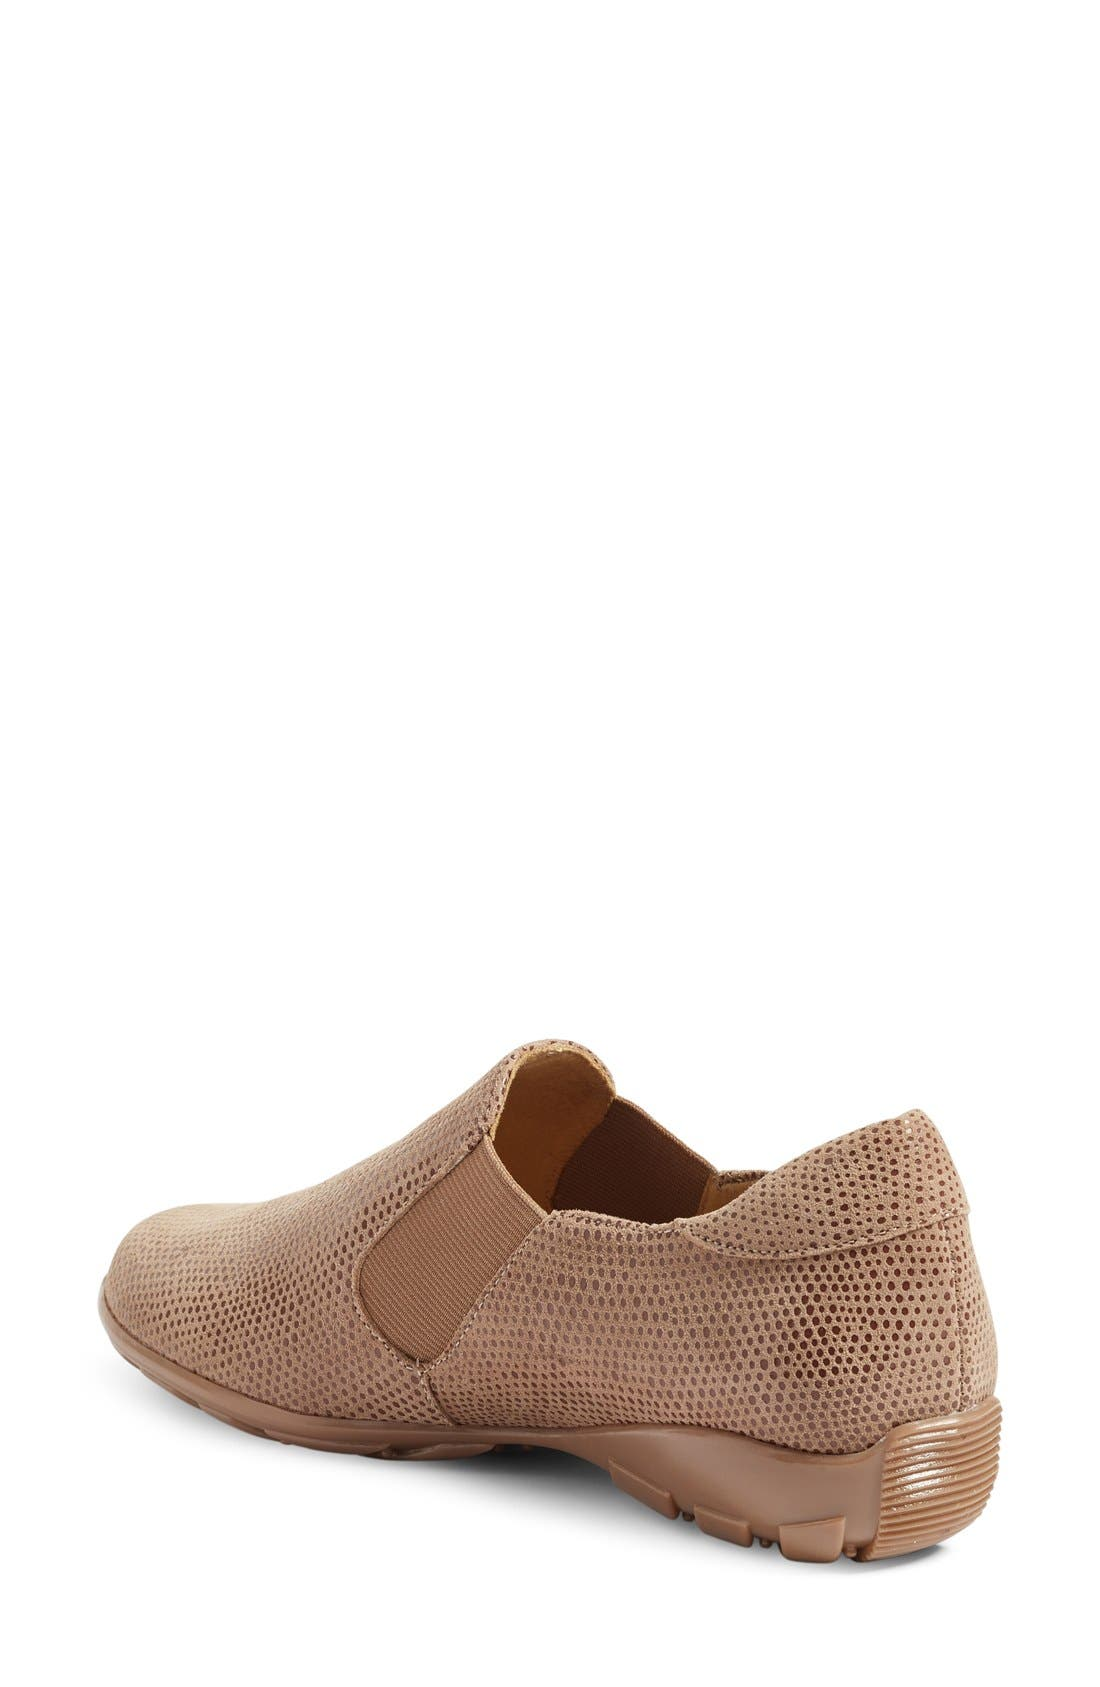 'Anemone' Loafer,                             Main thumbnail 1, color,                             TAUPE PRINT